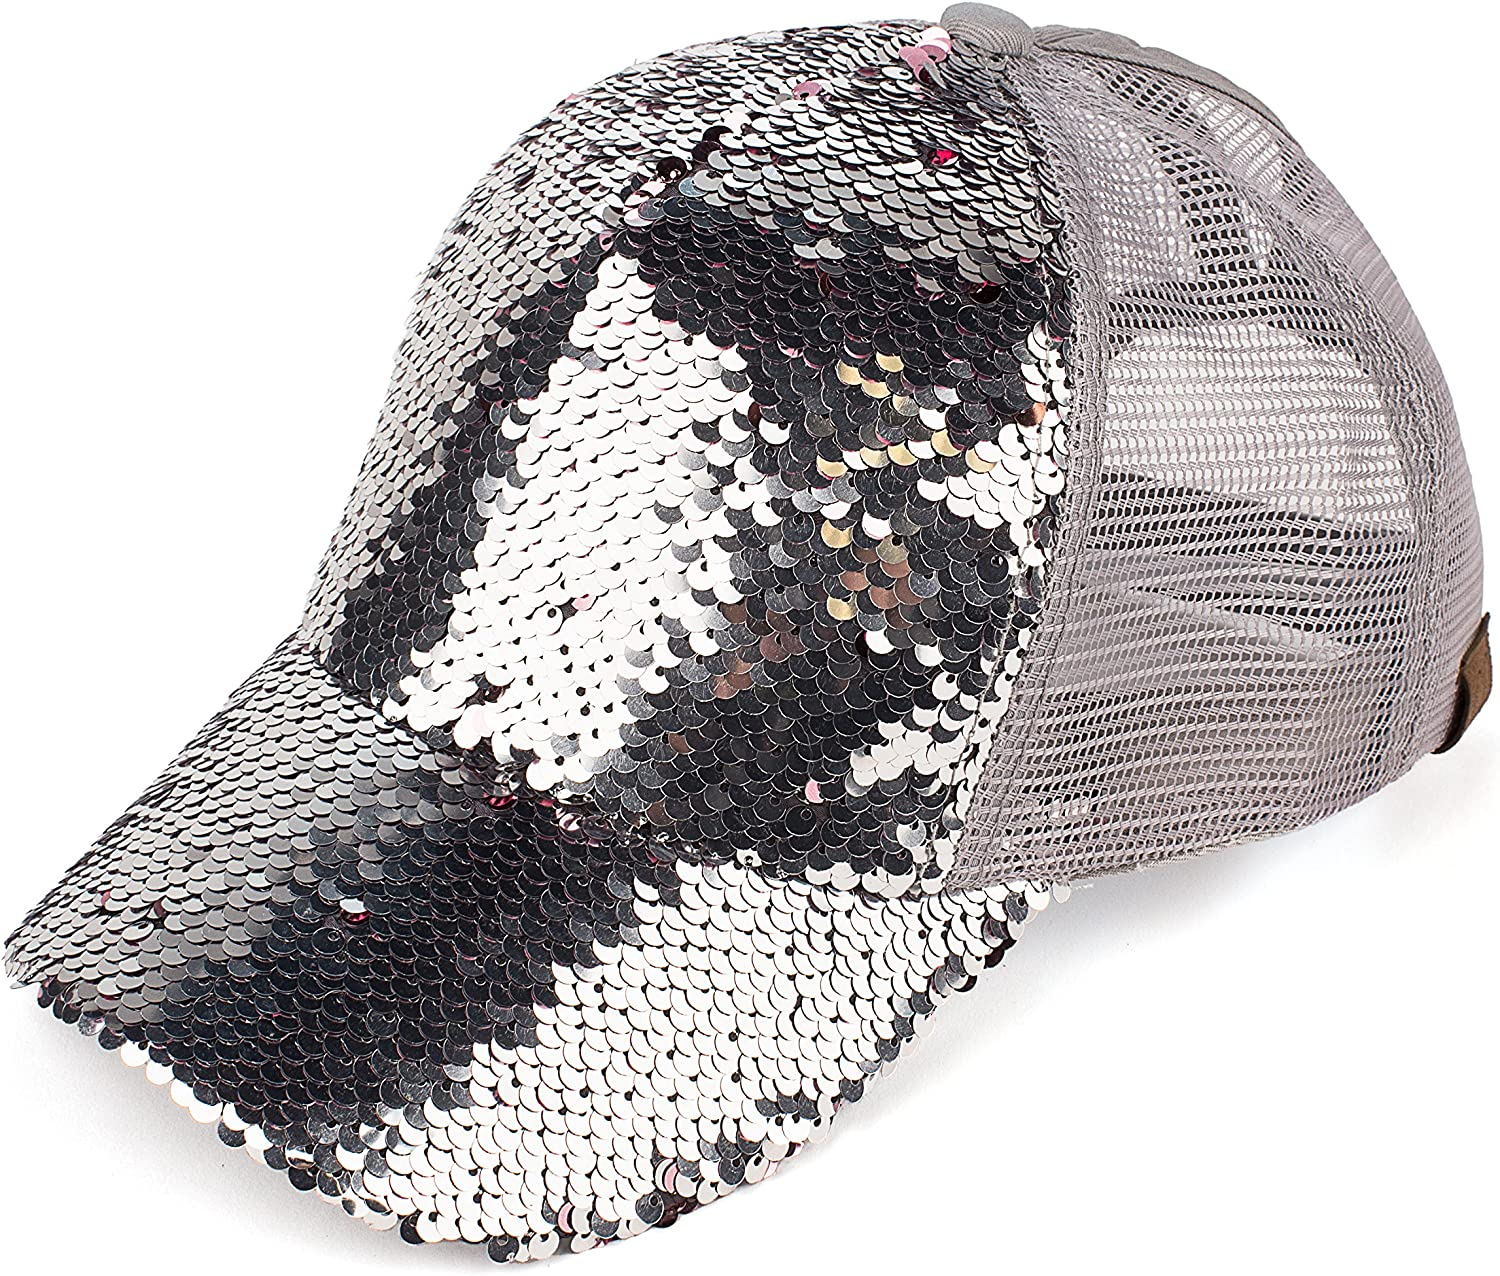 C.C Hats Magic Sequin-Covered Pony Tail Trucker Cap (BT-723)